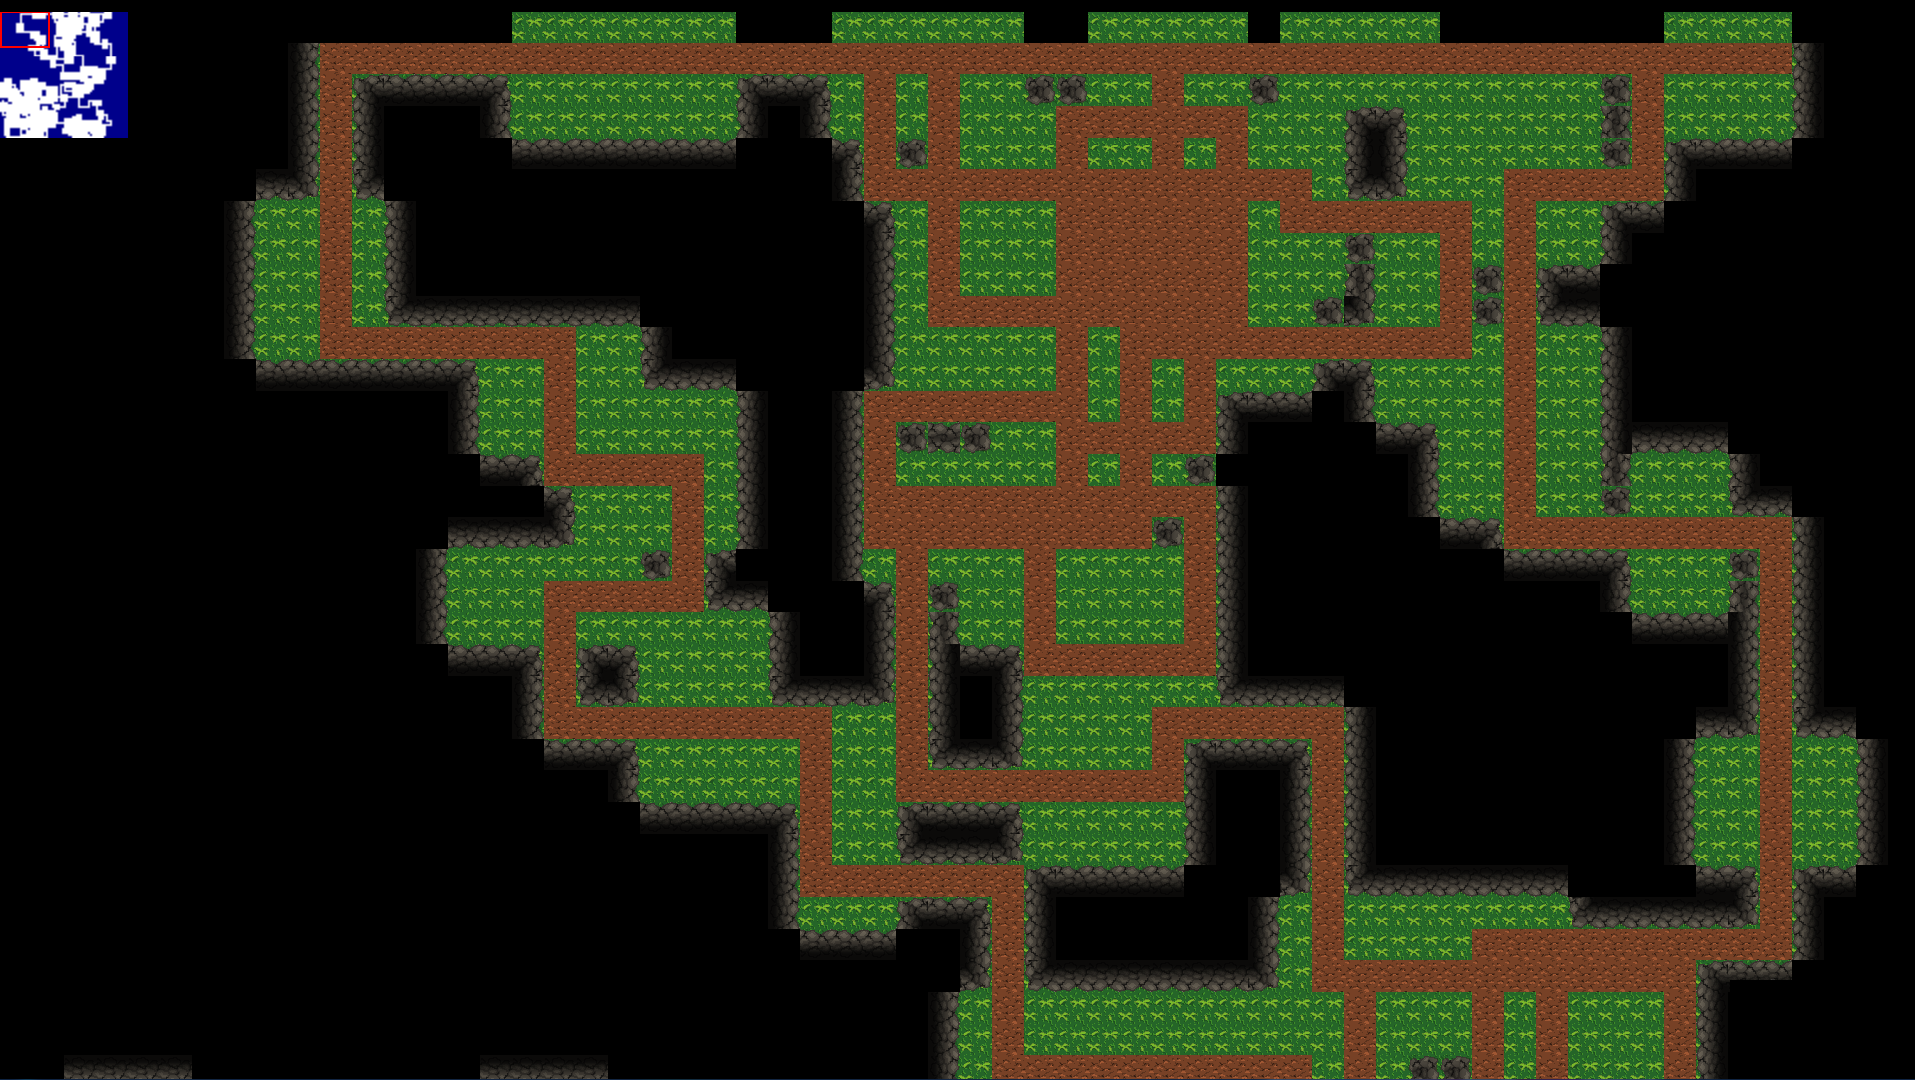 Procedural Dungeon Generation